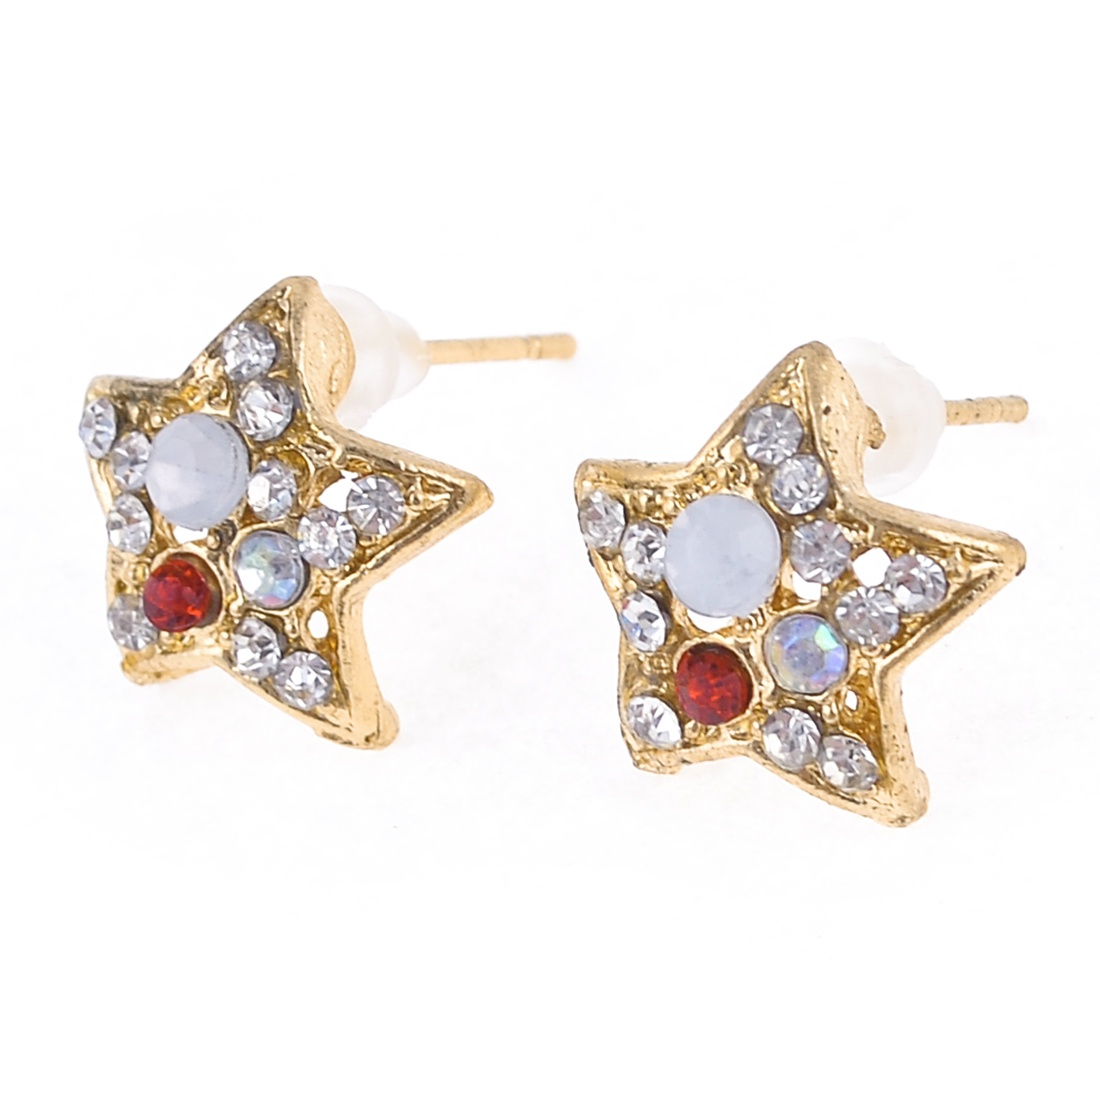 Lady Ear Ornament Shiny Star Design Stud Earrings Gold Tone White 2Pcs